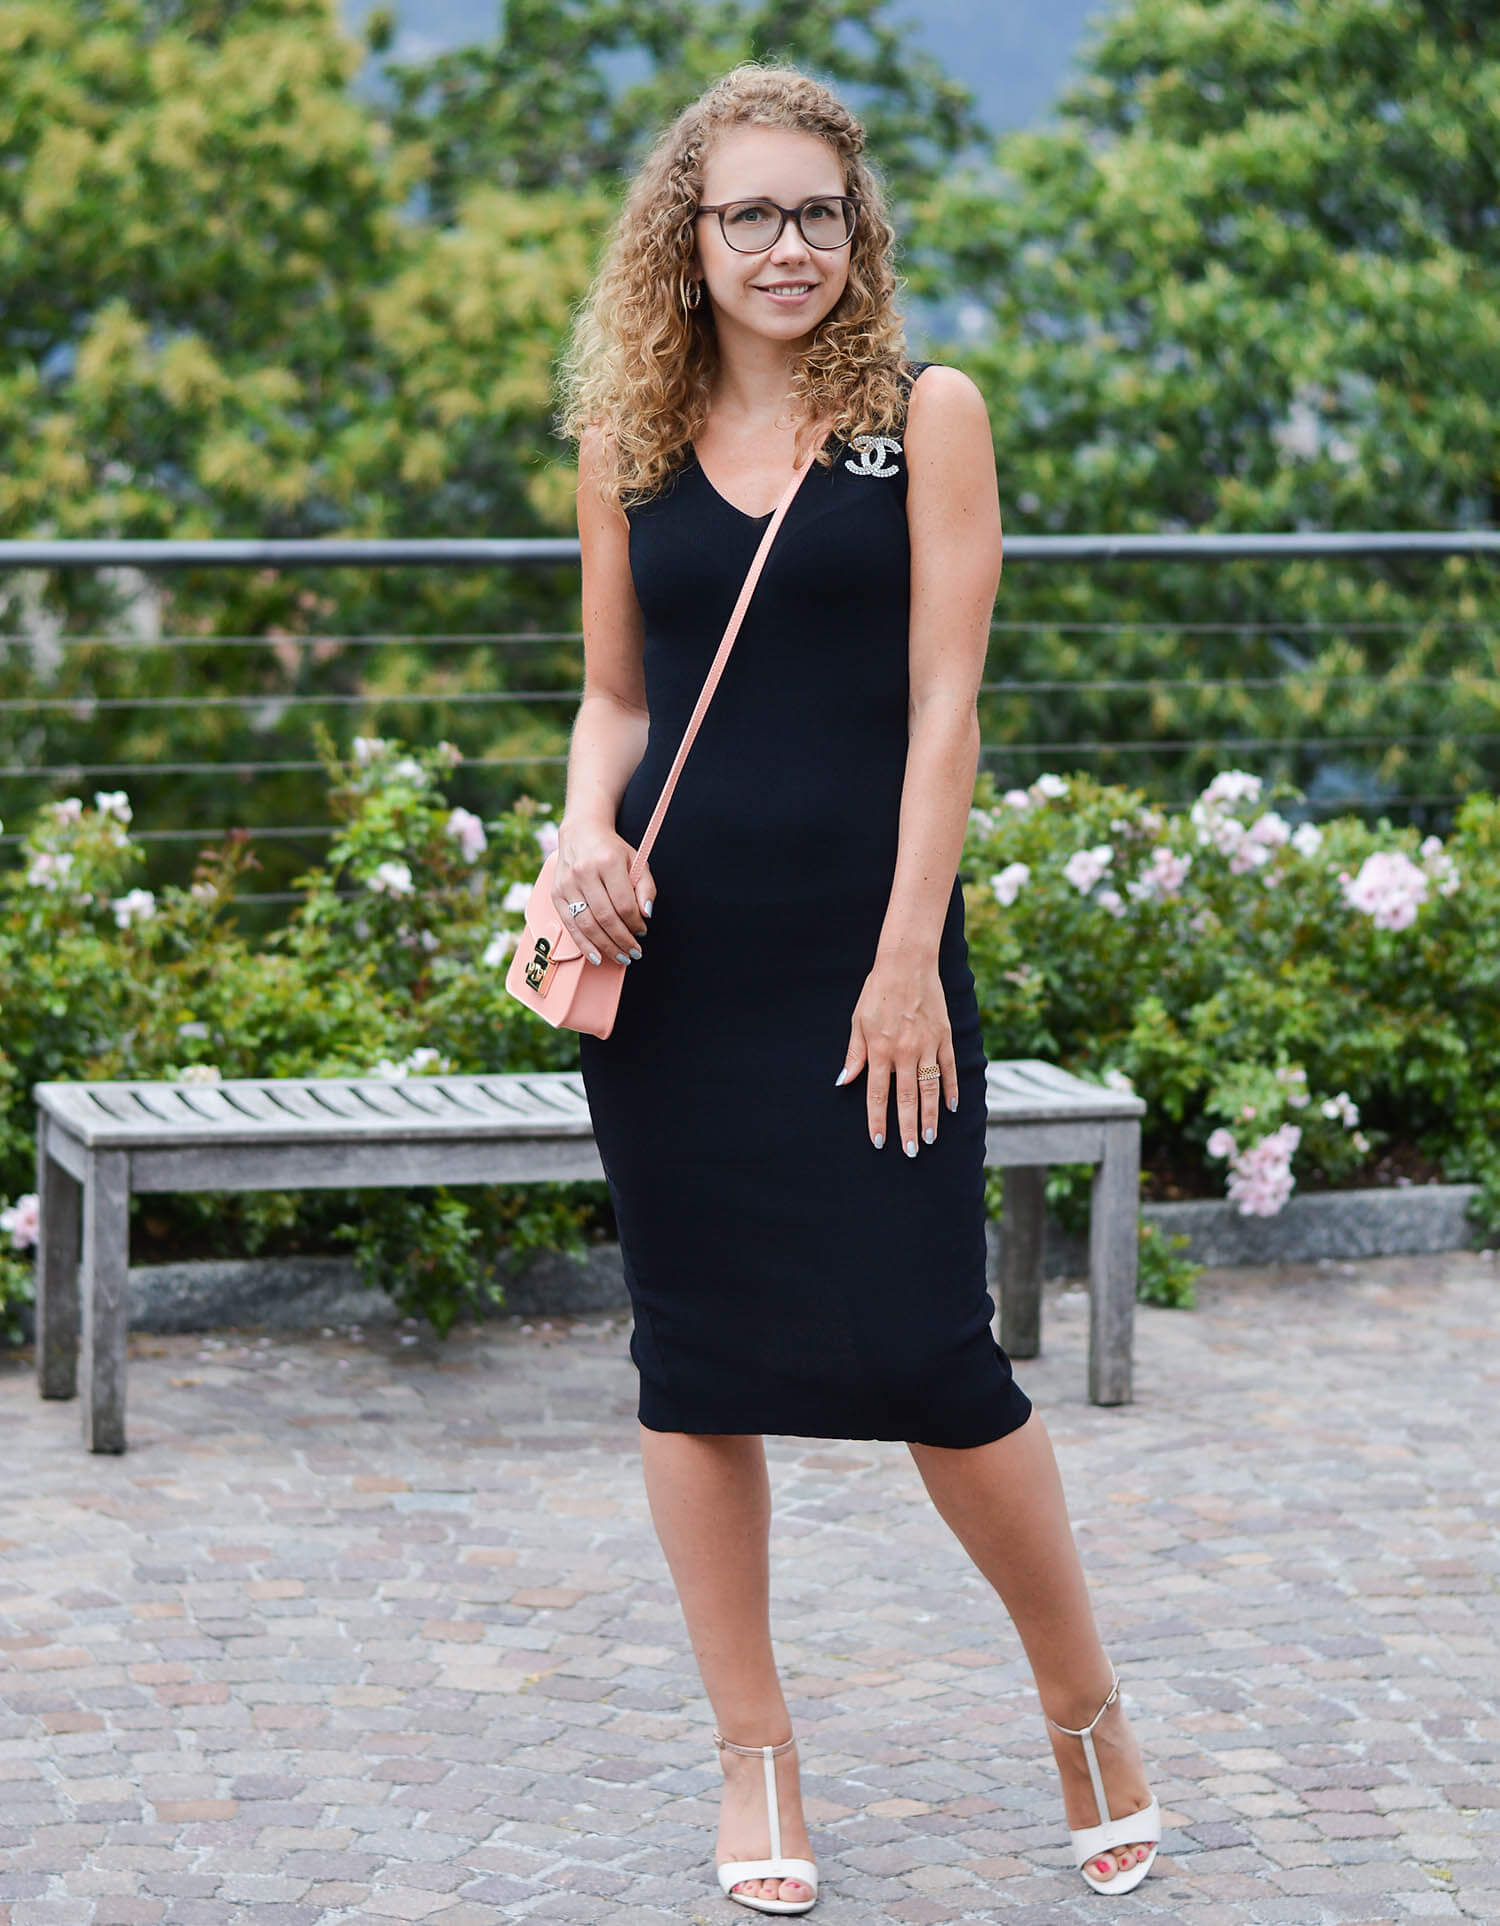 Kationette-fashionblog-nrw-Outfit-Little-Black-Dress-Fula-Chanel-South-Italy